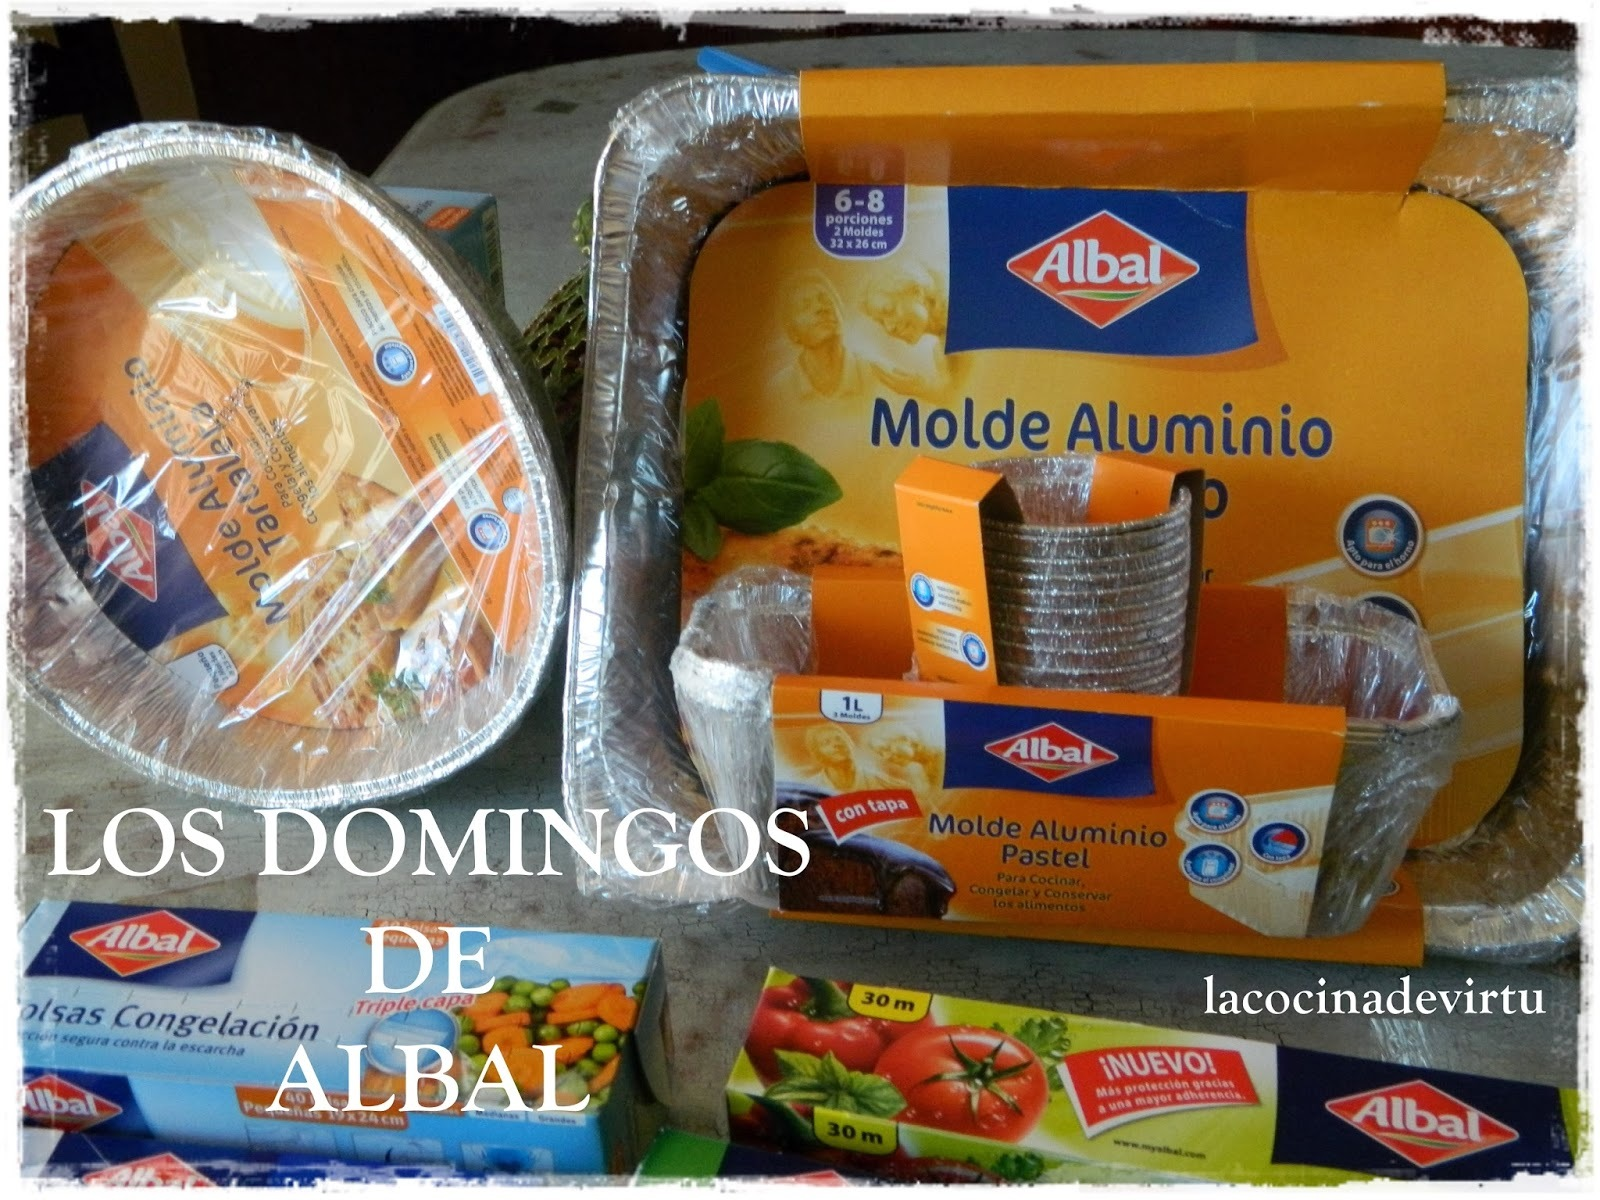 LOS DOMINGOS DE ALBAL: MOLDE ALUMINIO RECTANGULAR